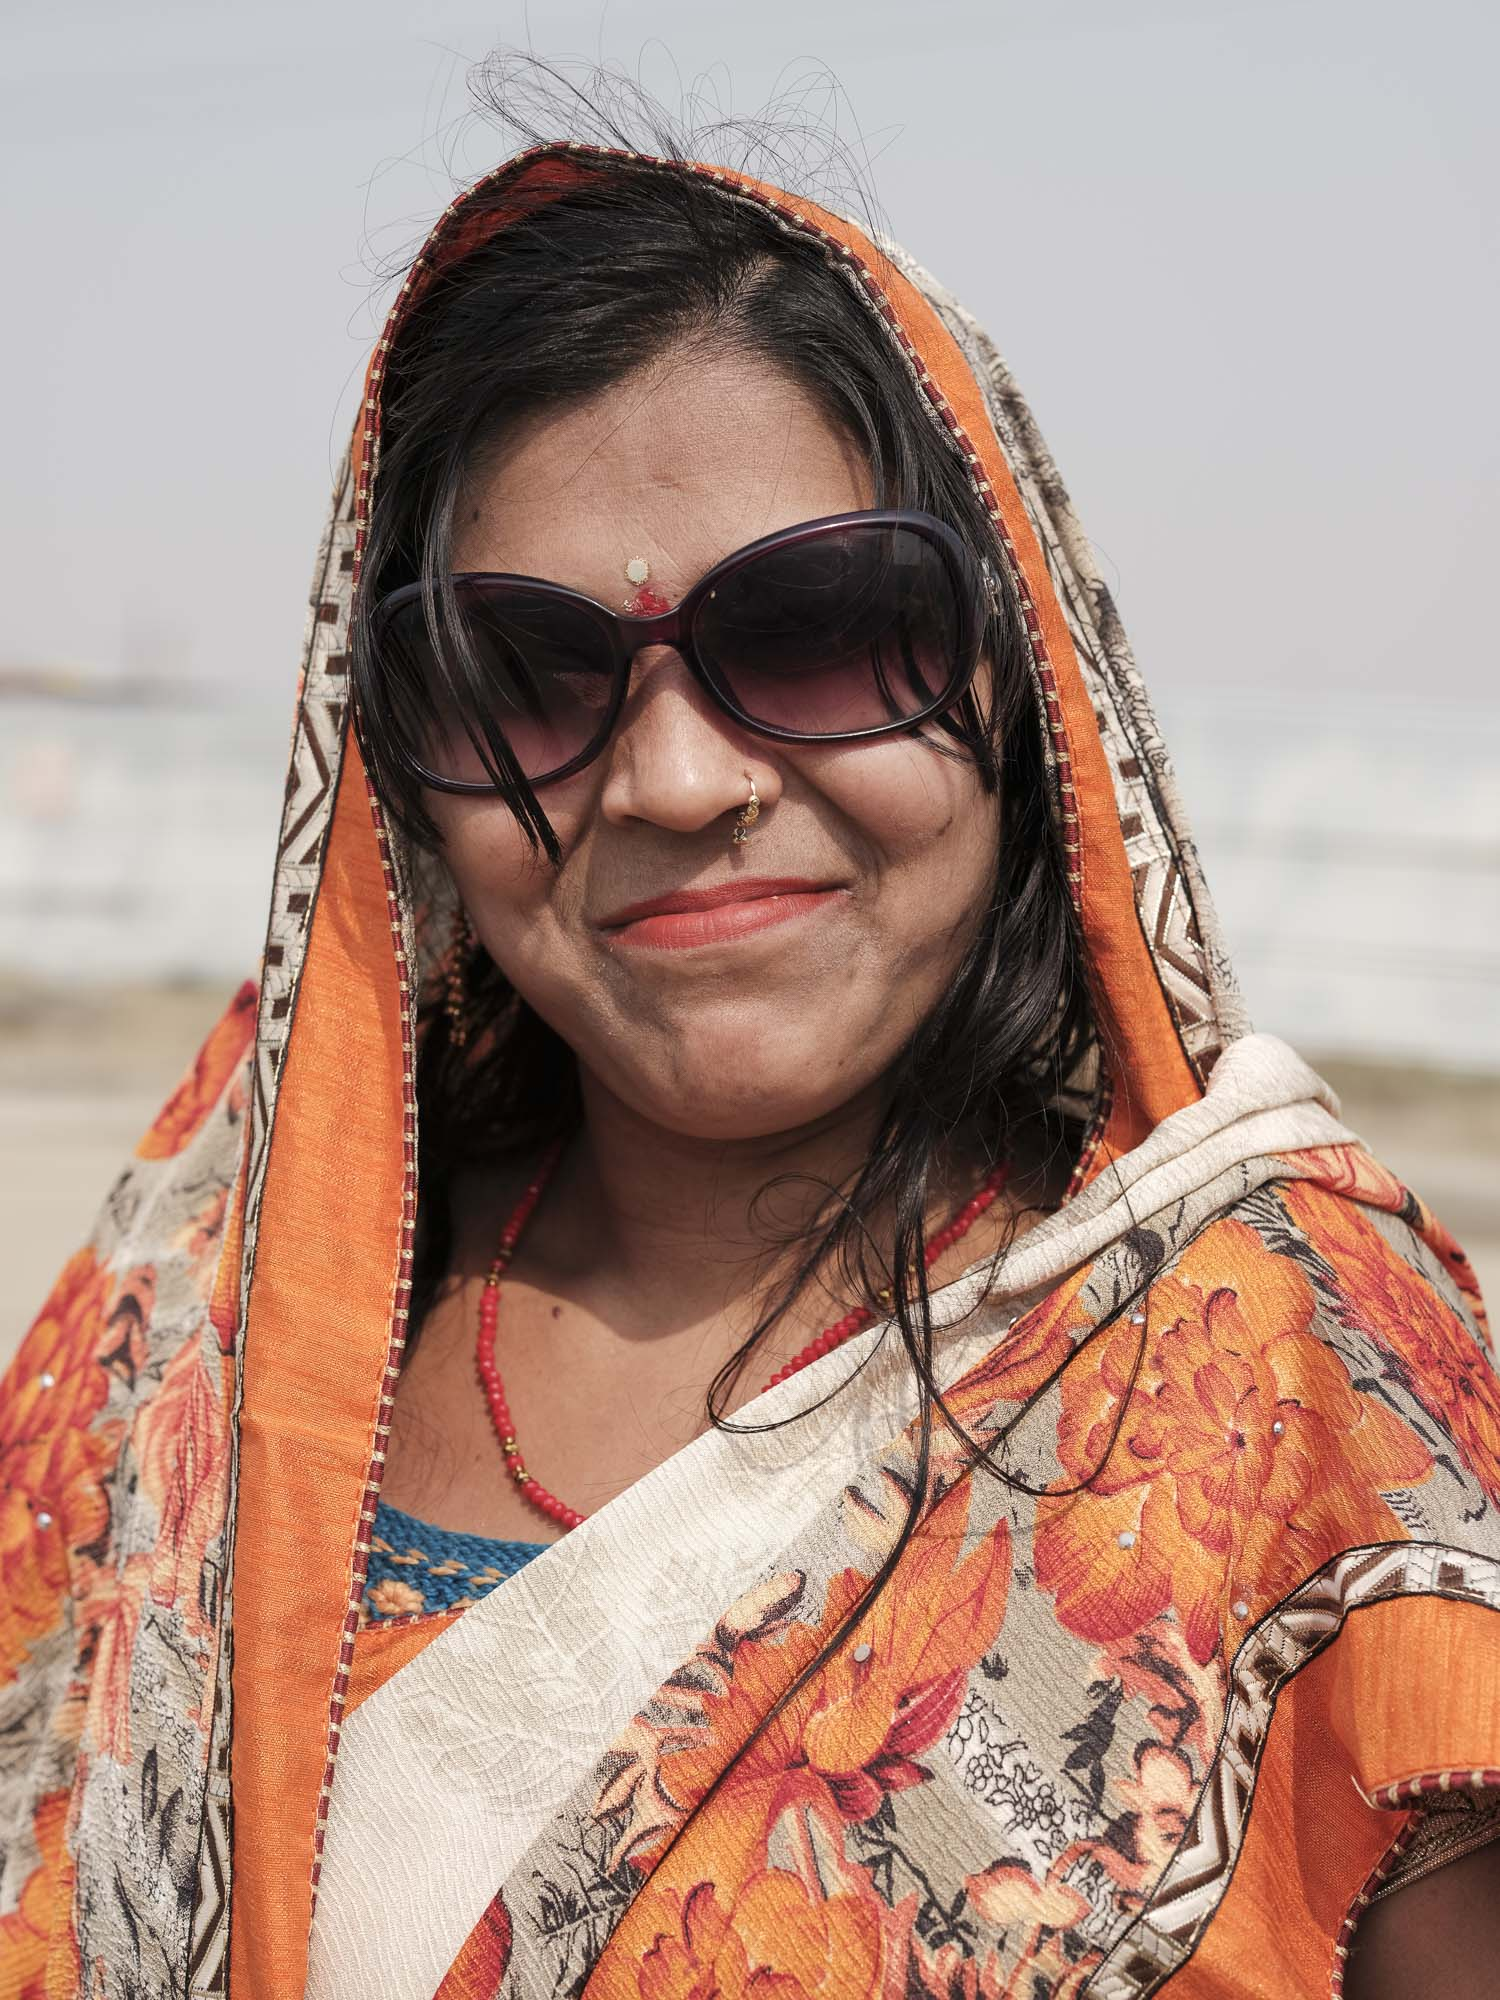 lady portrait sari pilgrims Kumbh mela 2019 India Allahabad Prayagraj Ardh hindu religious Festival event rivers photographer jose jeuland photography